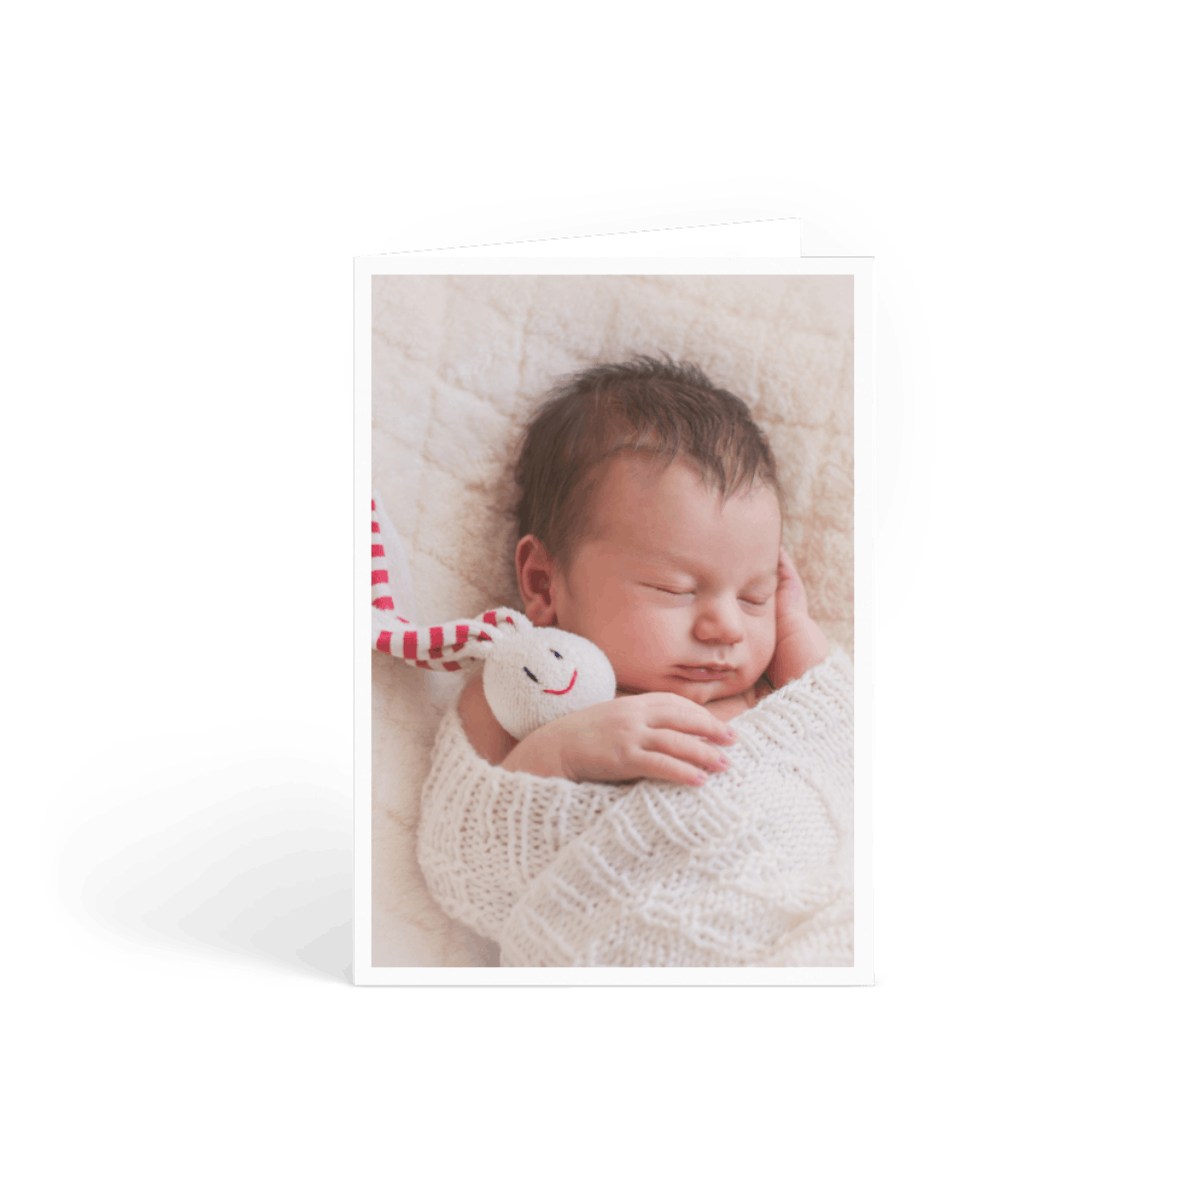 Https%3a%2f%2fwww.papier.com%2fproduct image%2f7464%2f2%2fsmall border baby 1835 vorderseite 1534857992.png?ixlib=rb 1.1